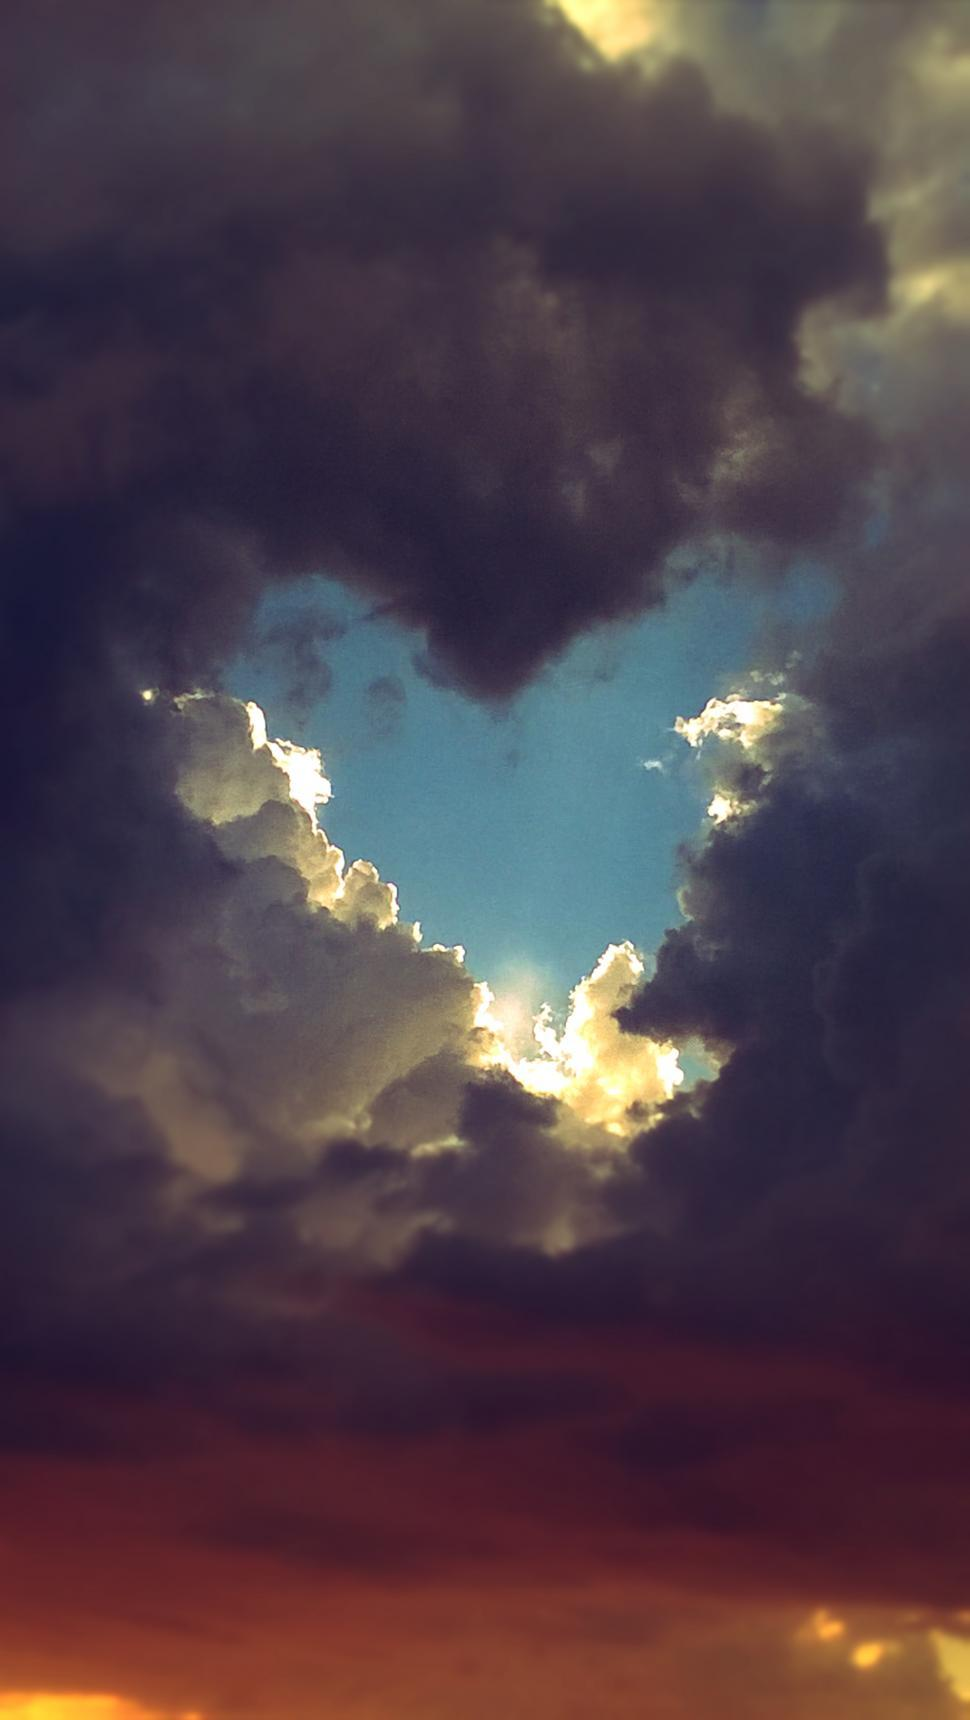 Download Free Stock HD Photo of Heart Shaped Break in the Clouds  Online